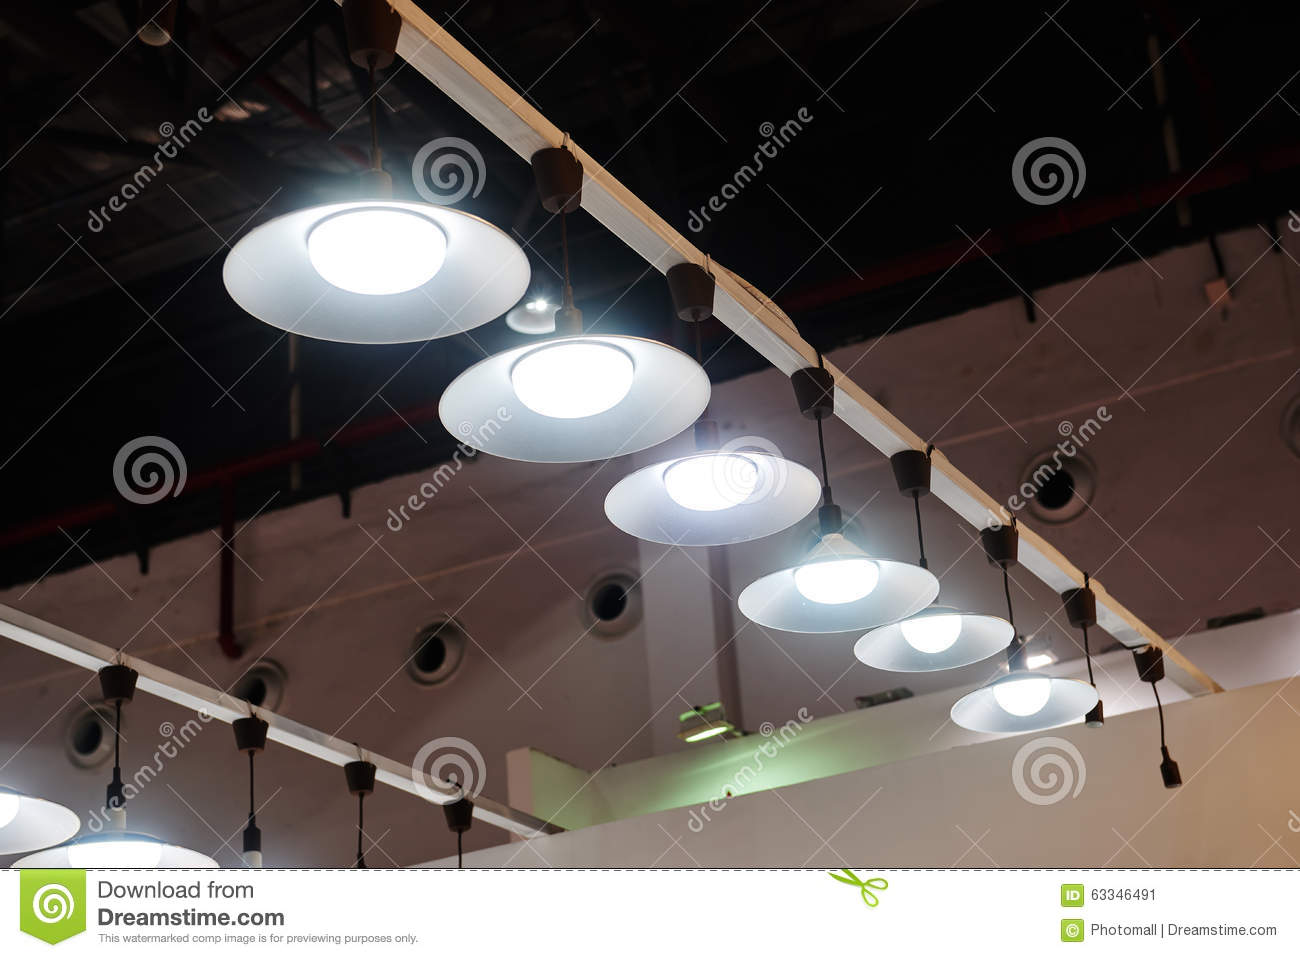 Led Light Shop Led Hanging Lighting In Office Stock Image Image Of Business